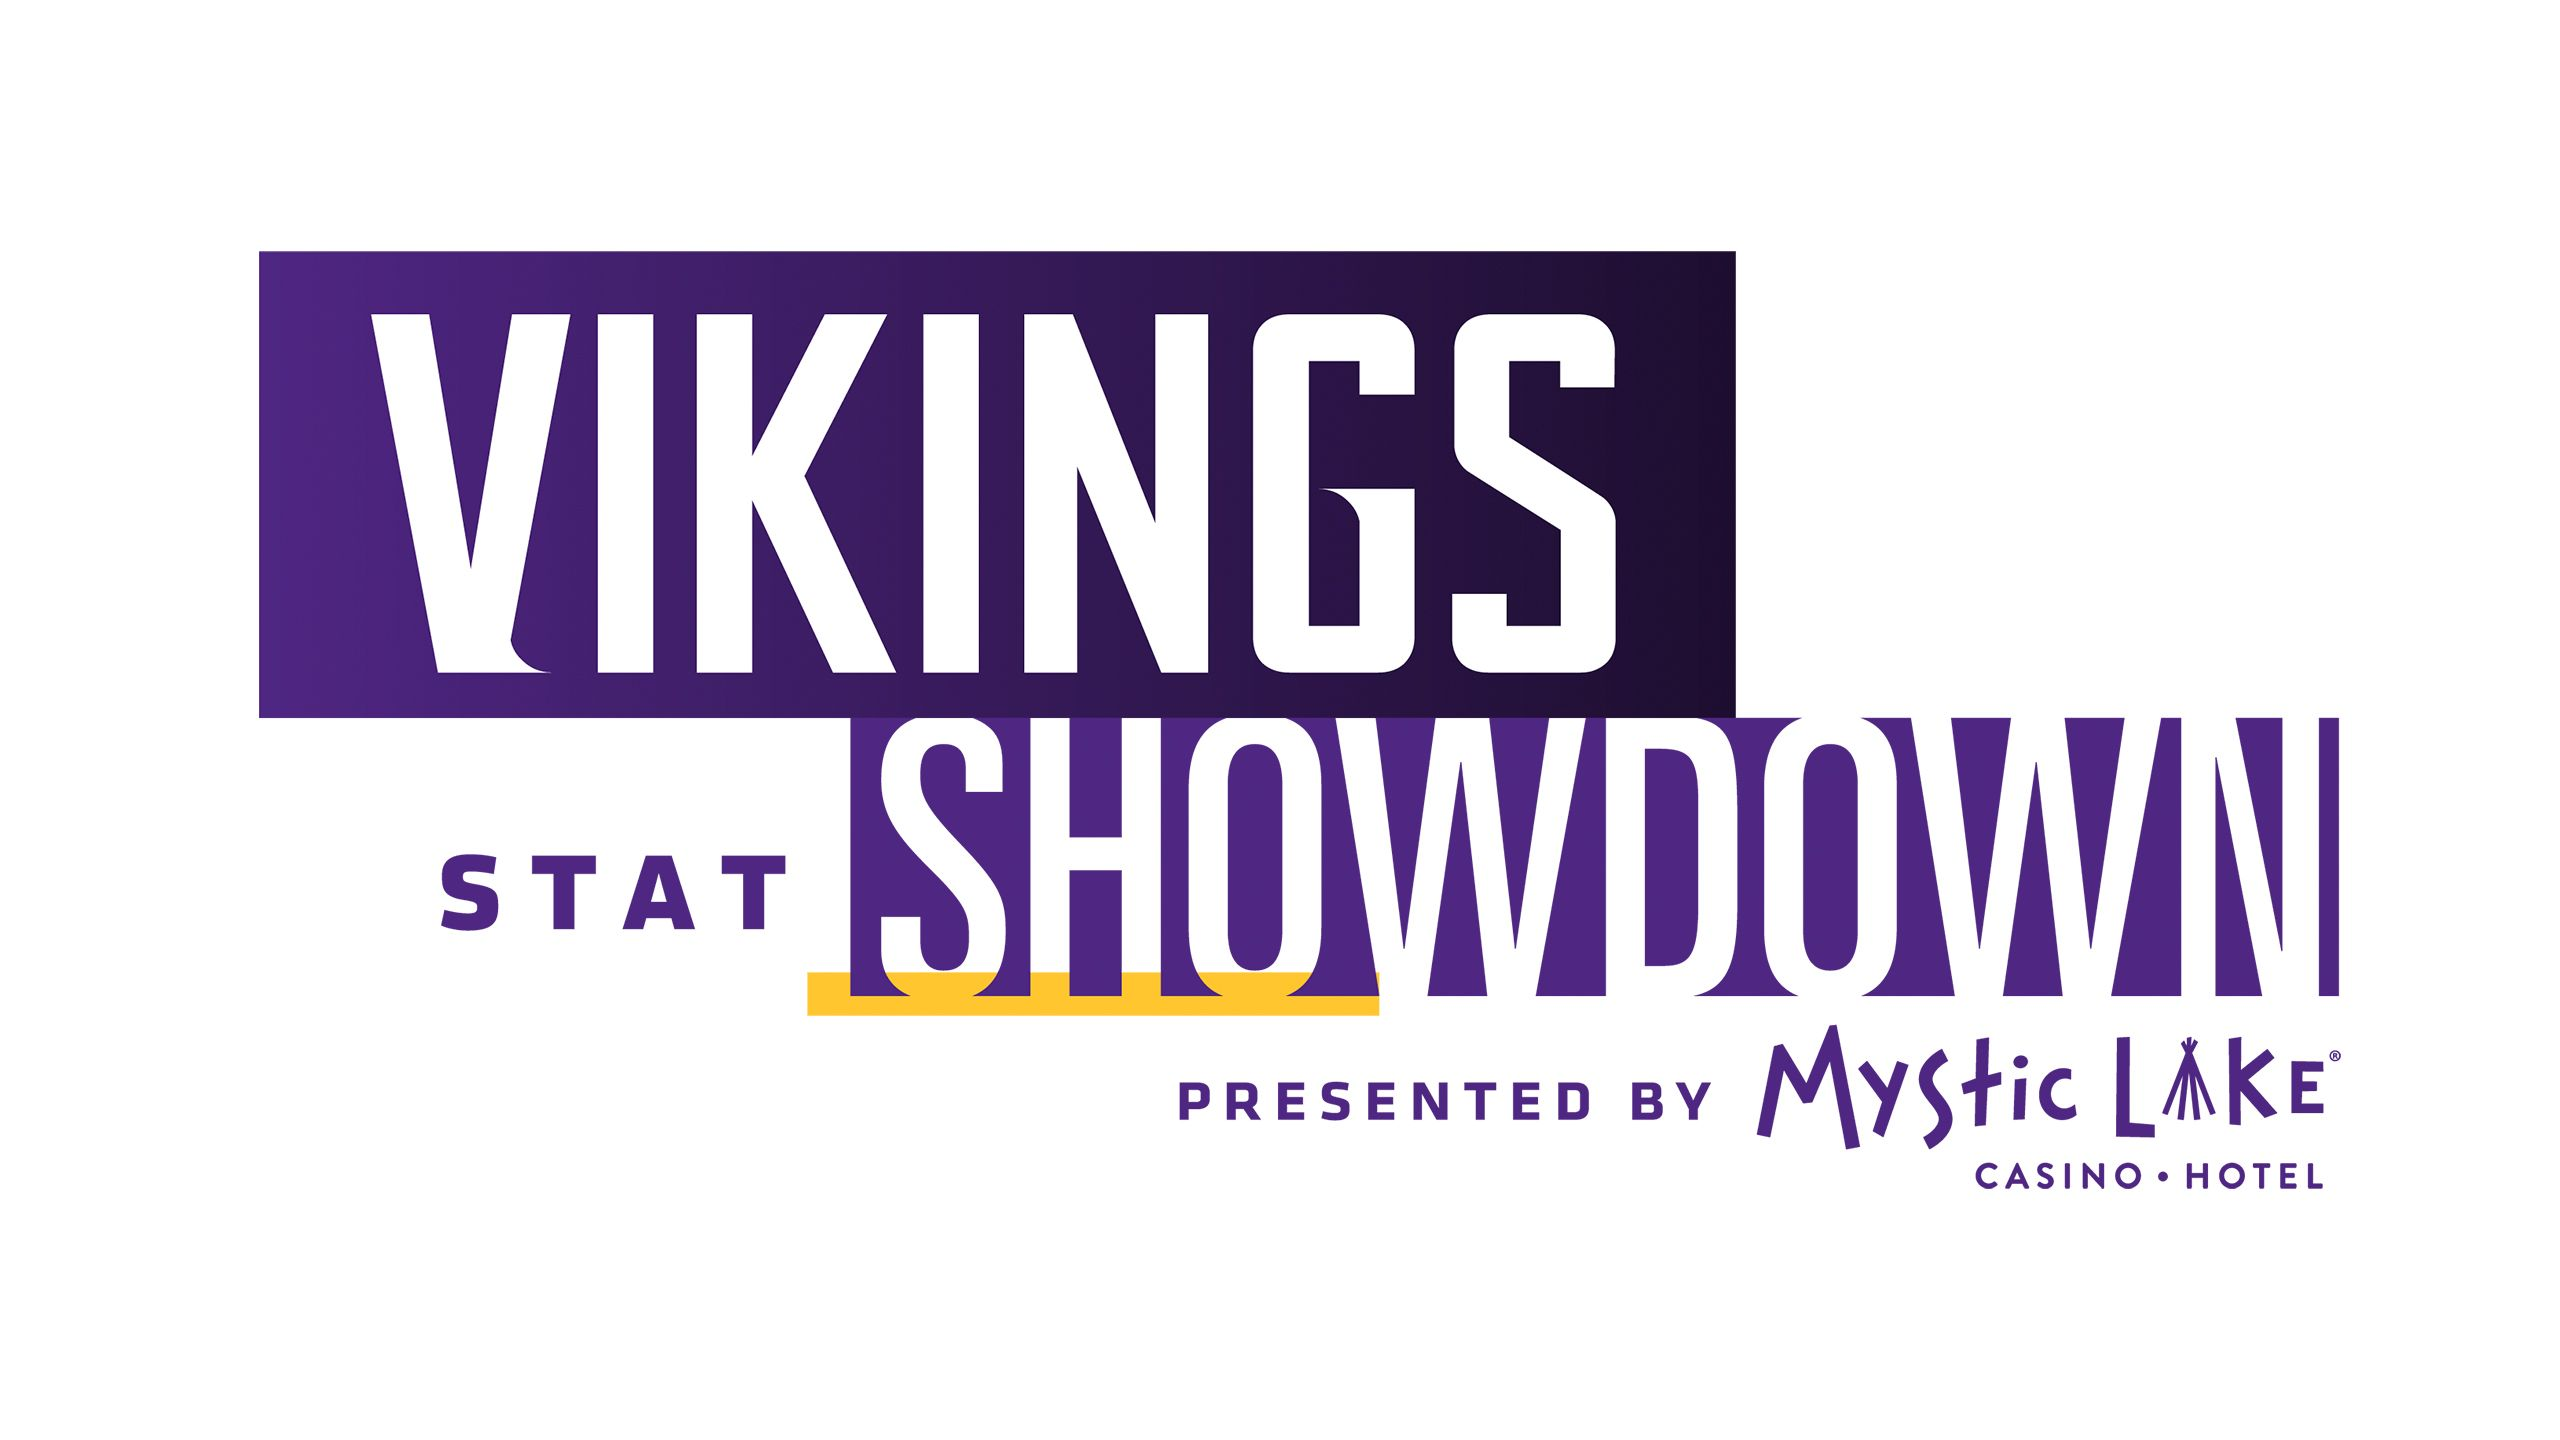 Vikings Stat Showdown Presented By Mystic Lake